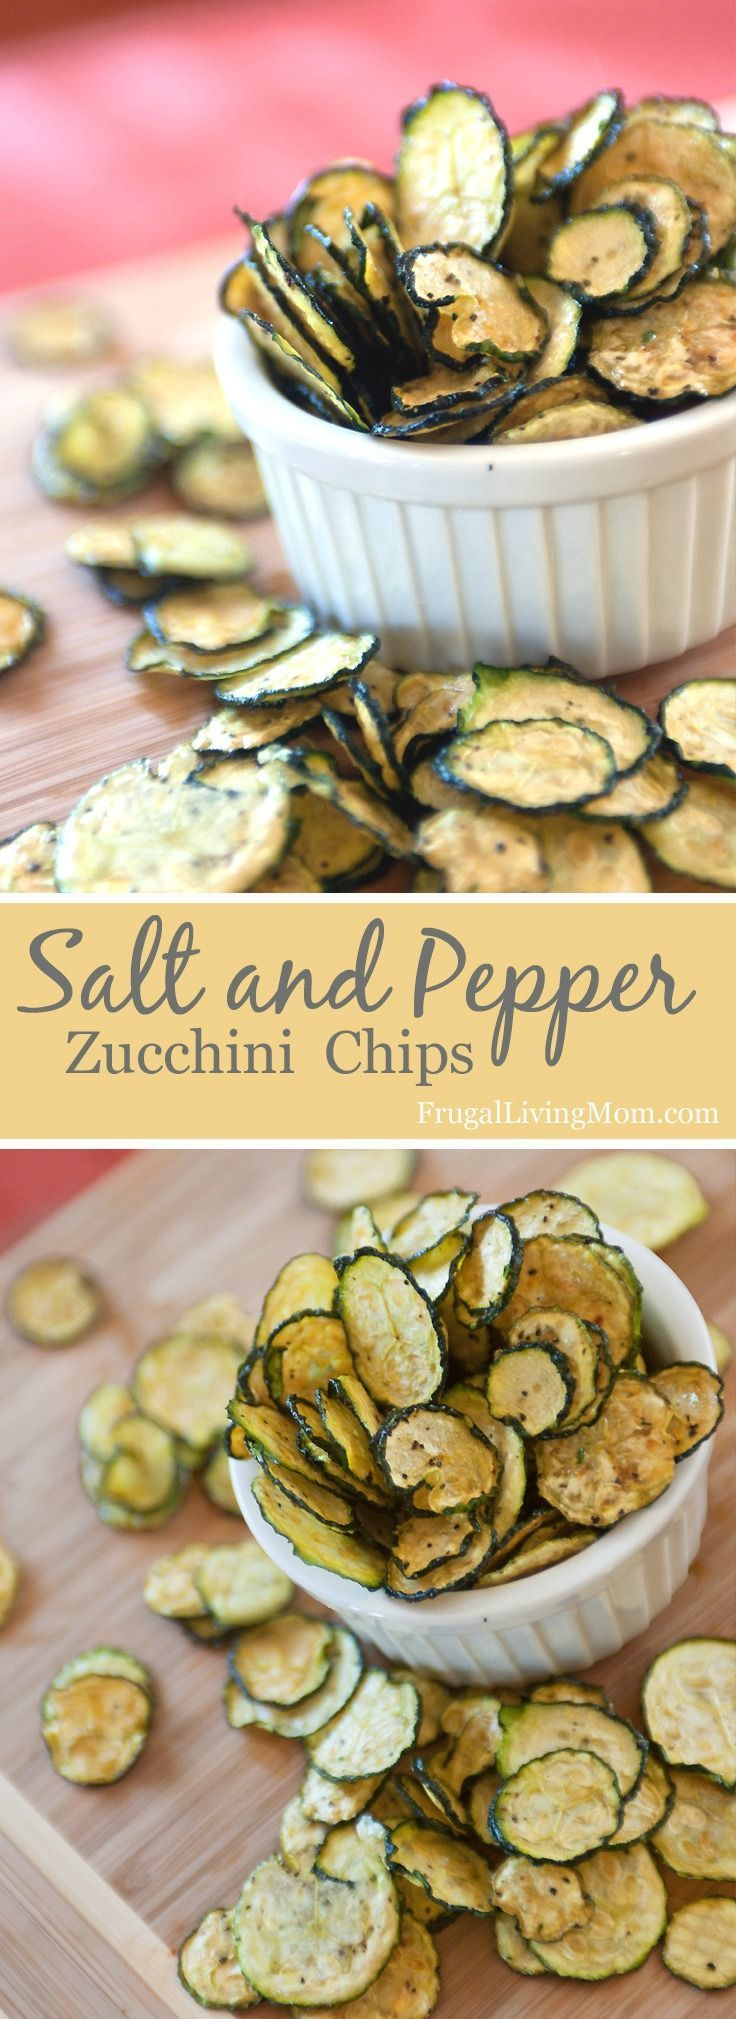 Salt and Pepper Zucchini Chips - Super Yummy Healthy Too !